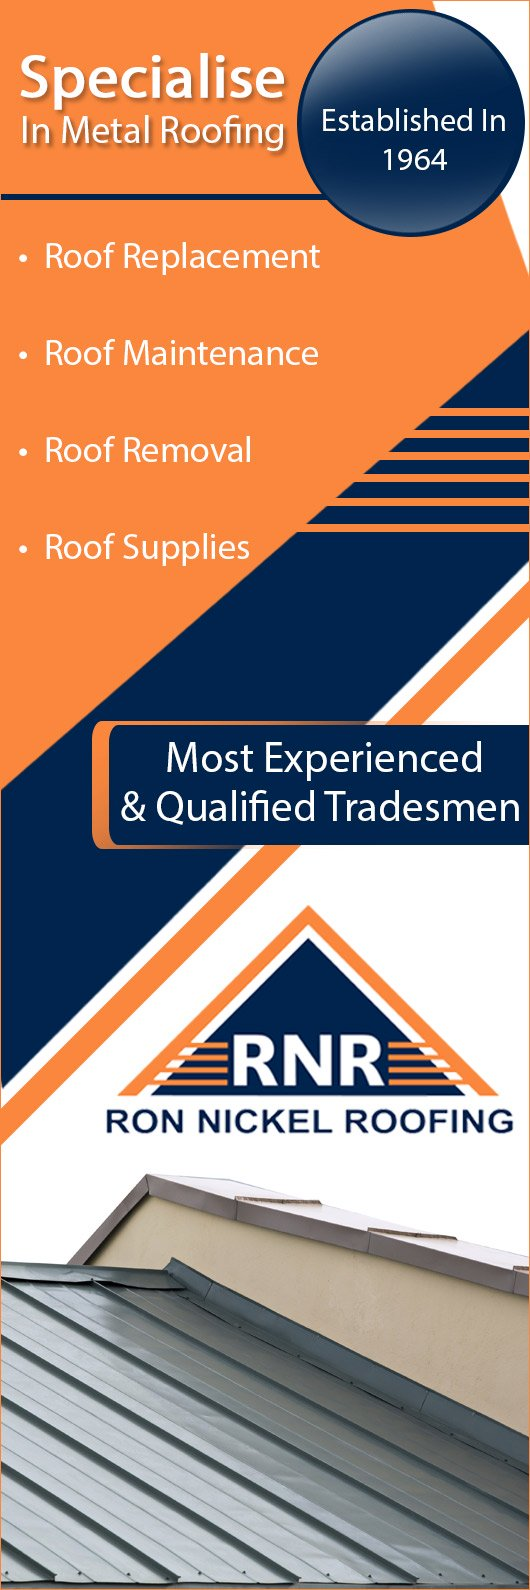 Ron Nickel Roofing Roofing Materials 15a Machinery Dr